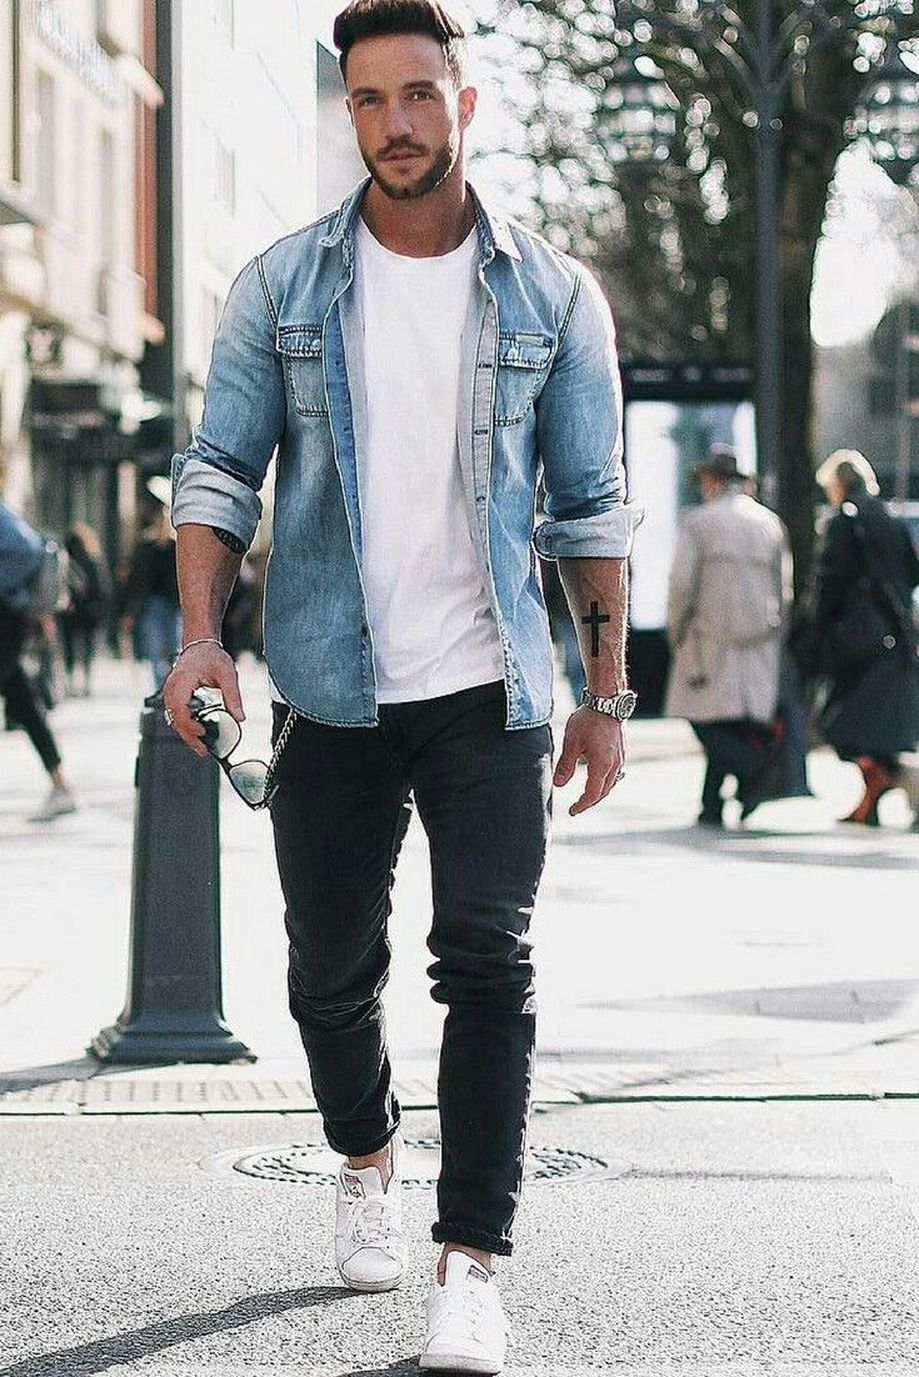 Cool Casual Men\u0027s Fashions Summer Outfits Ideas 37